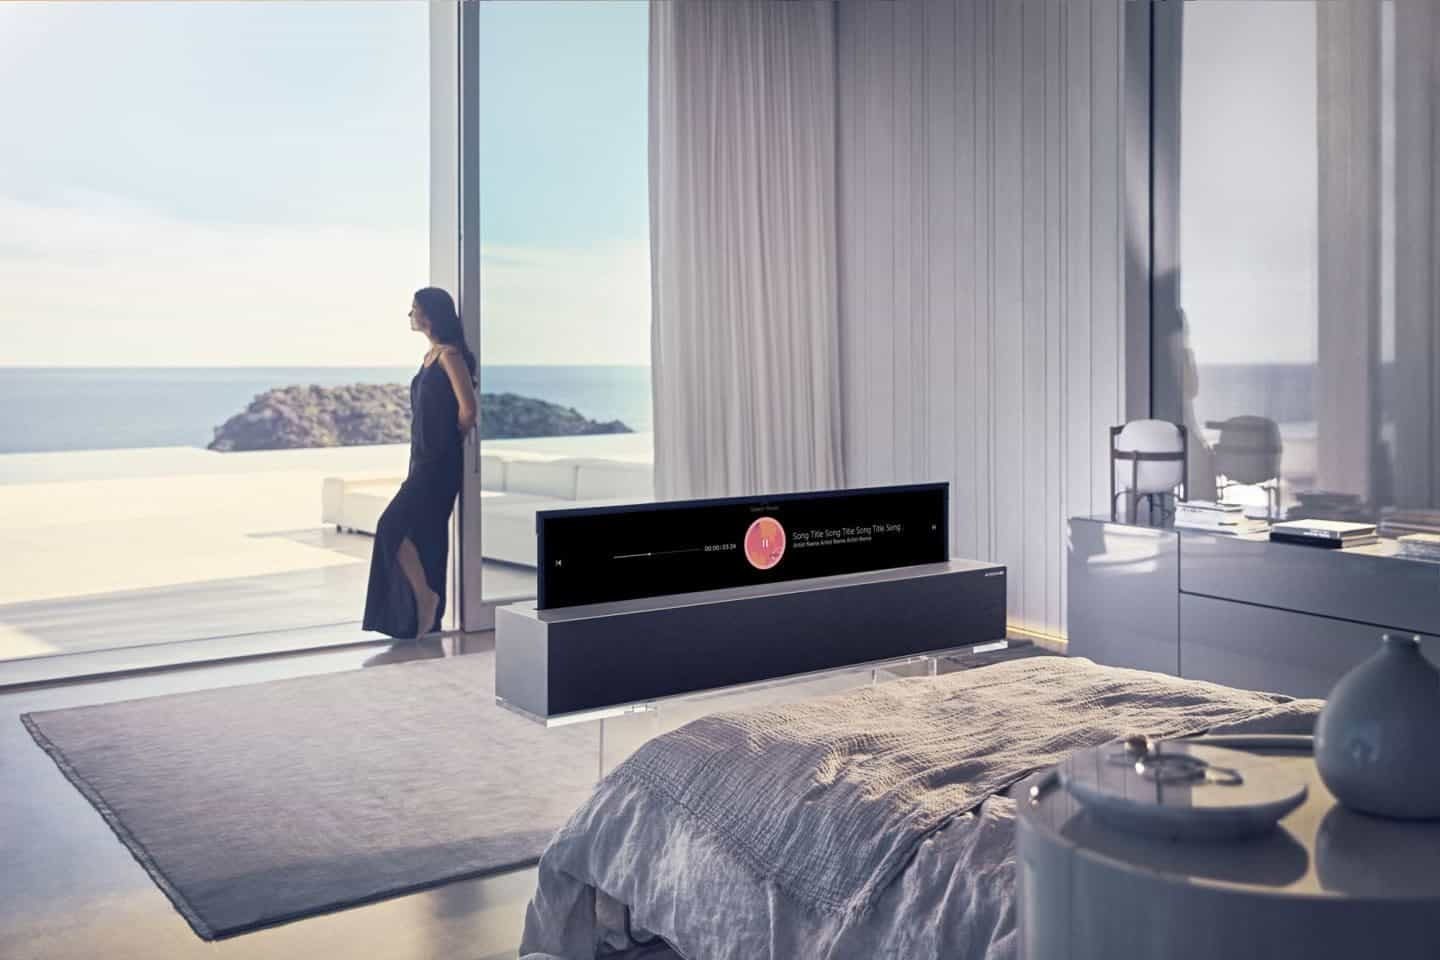 LG Signature Roll-up TV - innovative TVs